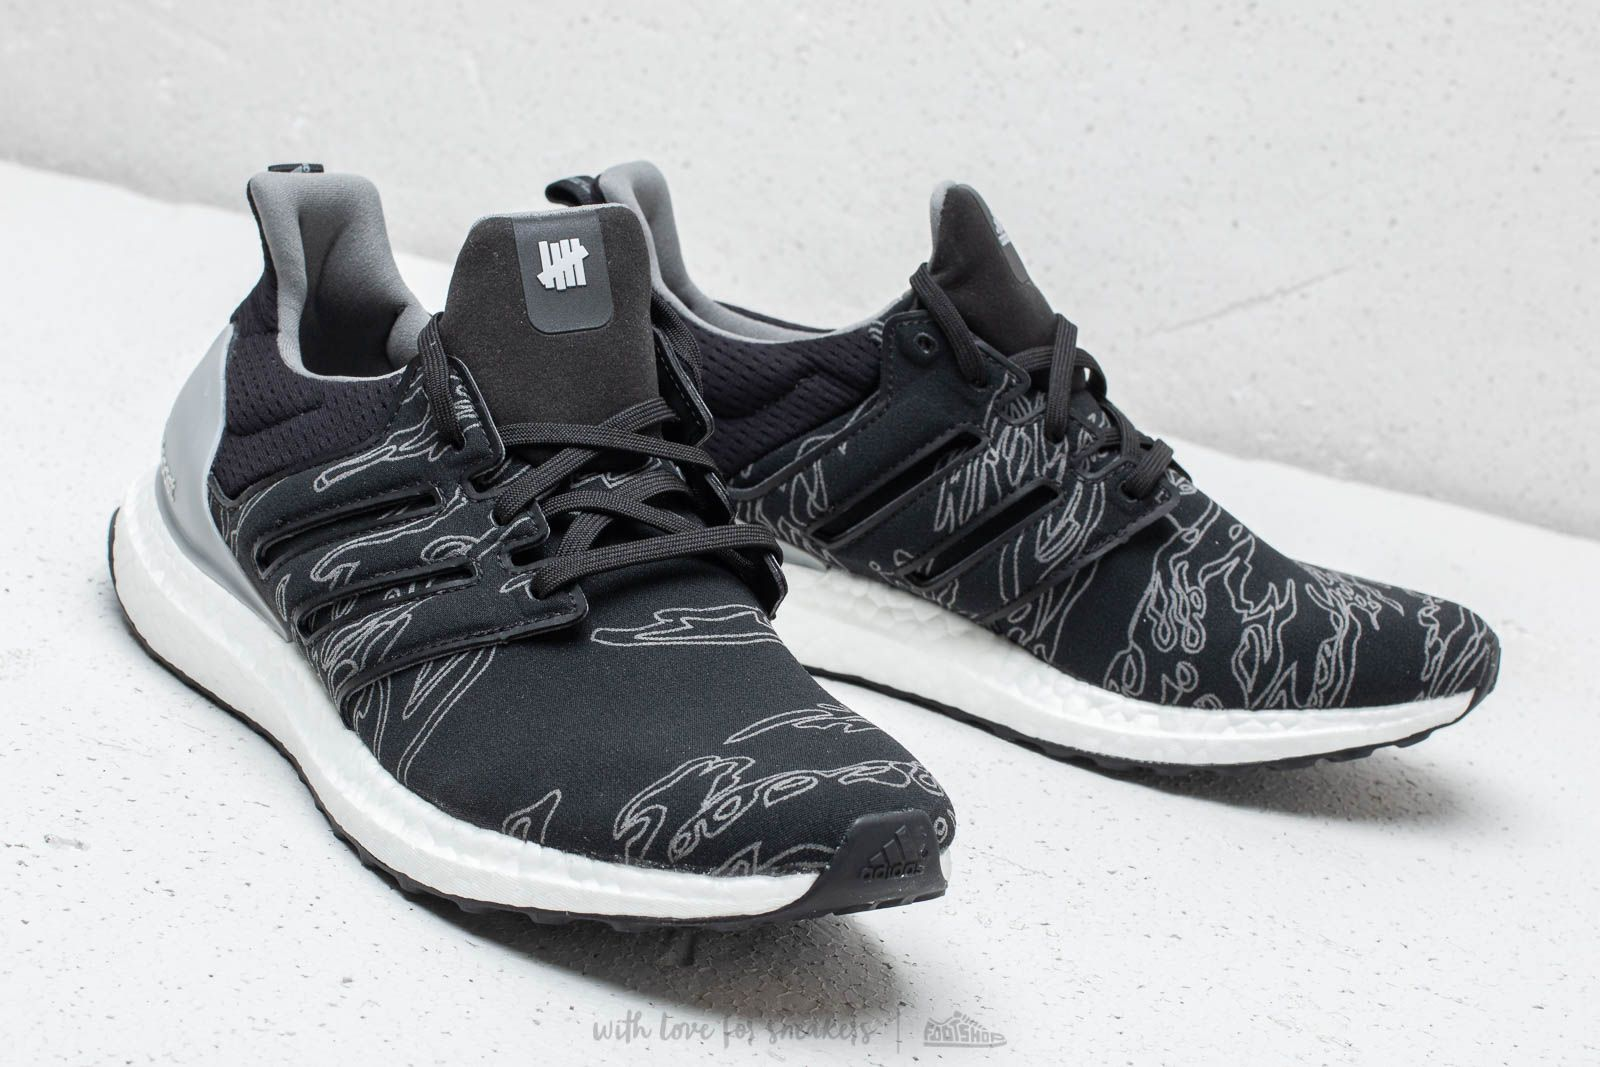 cheaper d646e 8a294 adidas x Undefeated UltraBOOST Core Black/ Core Black/ Core ...